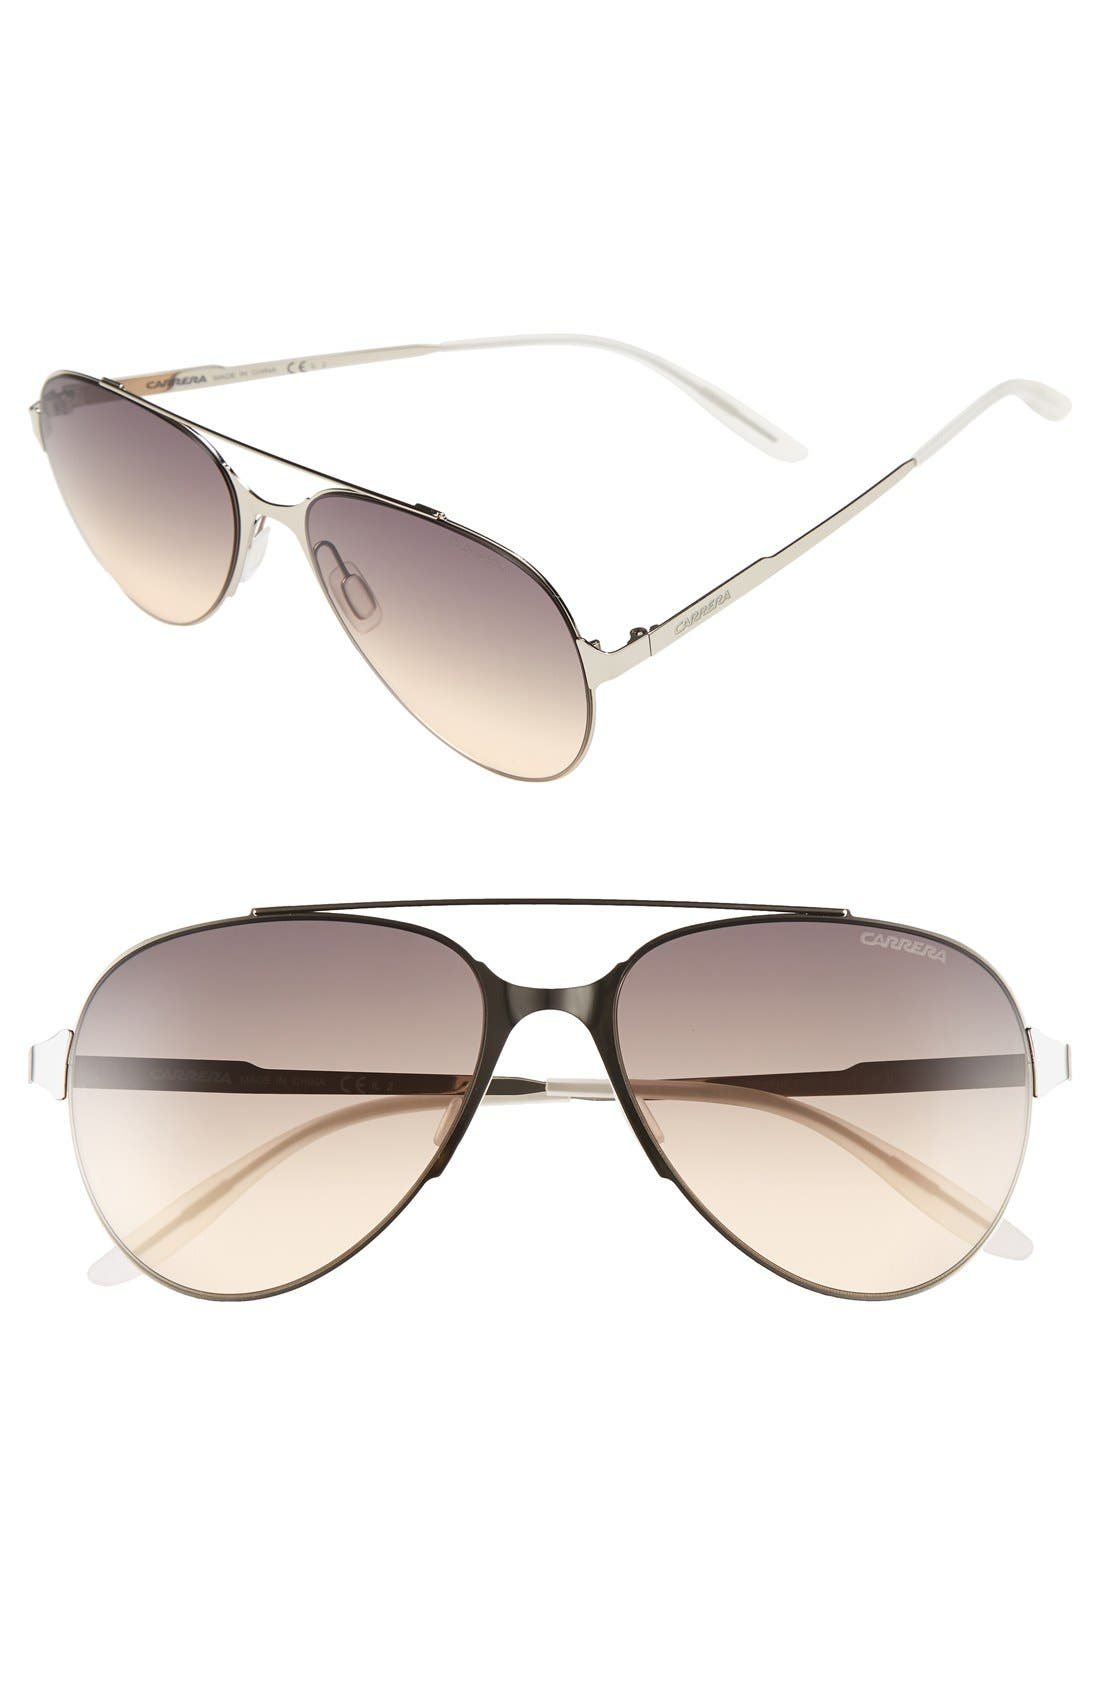 '113/S' Aviator Sunglasses,                             Main thumbnail 1, color,                             712